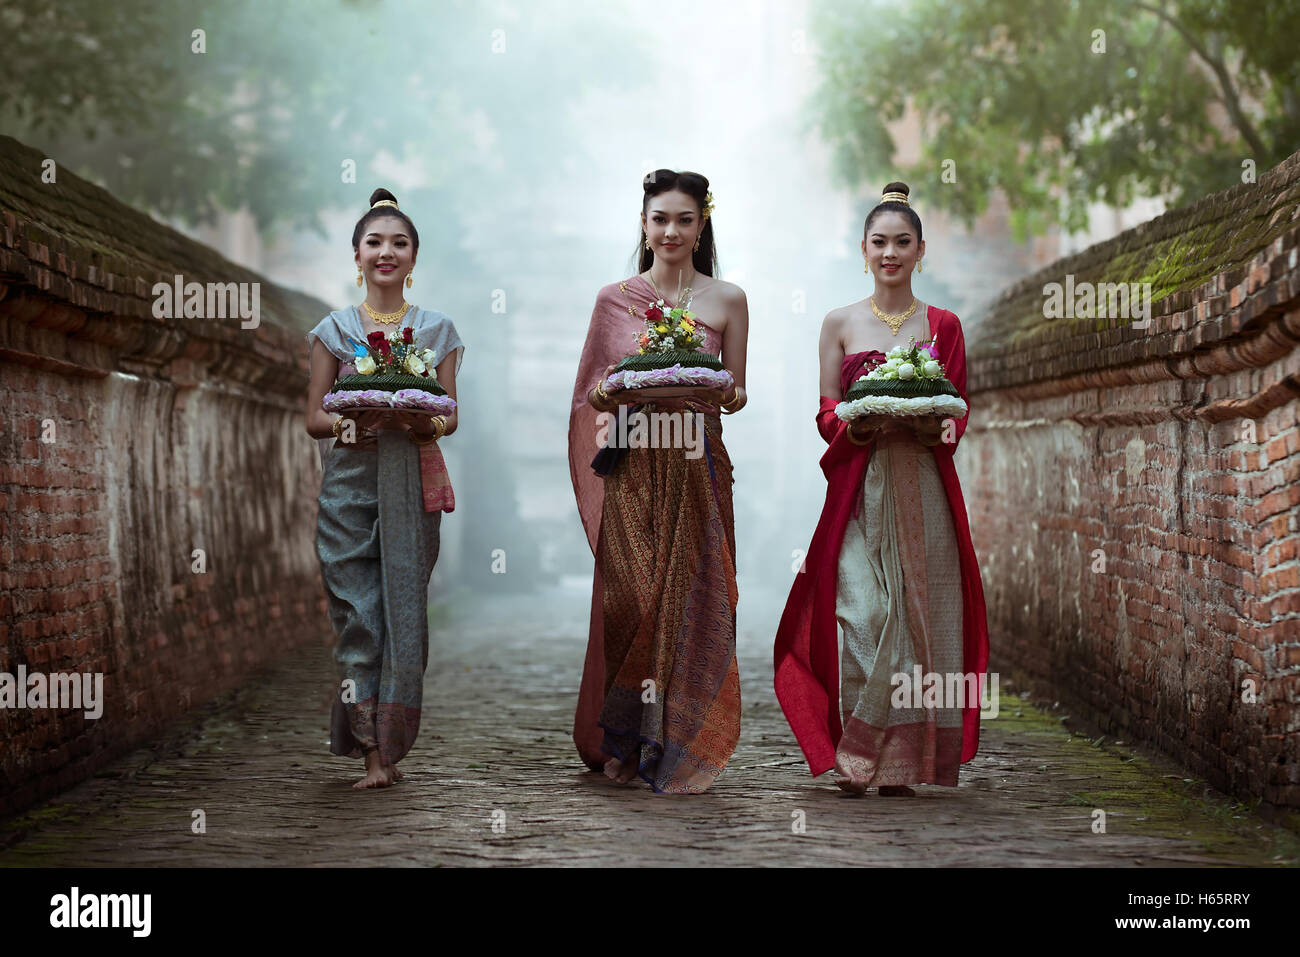 Loy Krathong and Queen Noppomas of Sukhothai